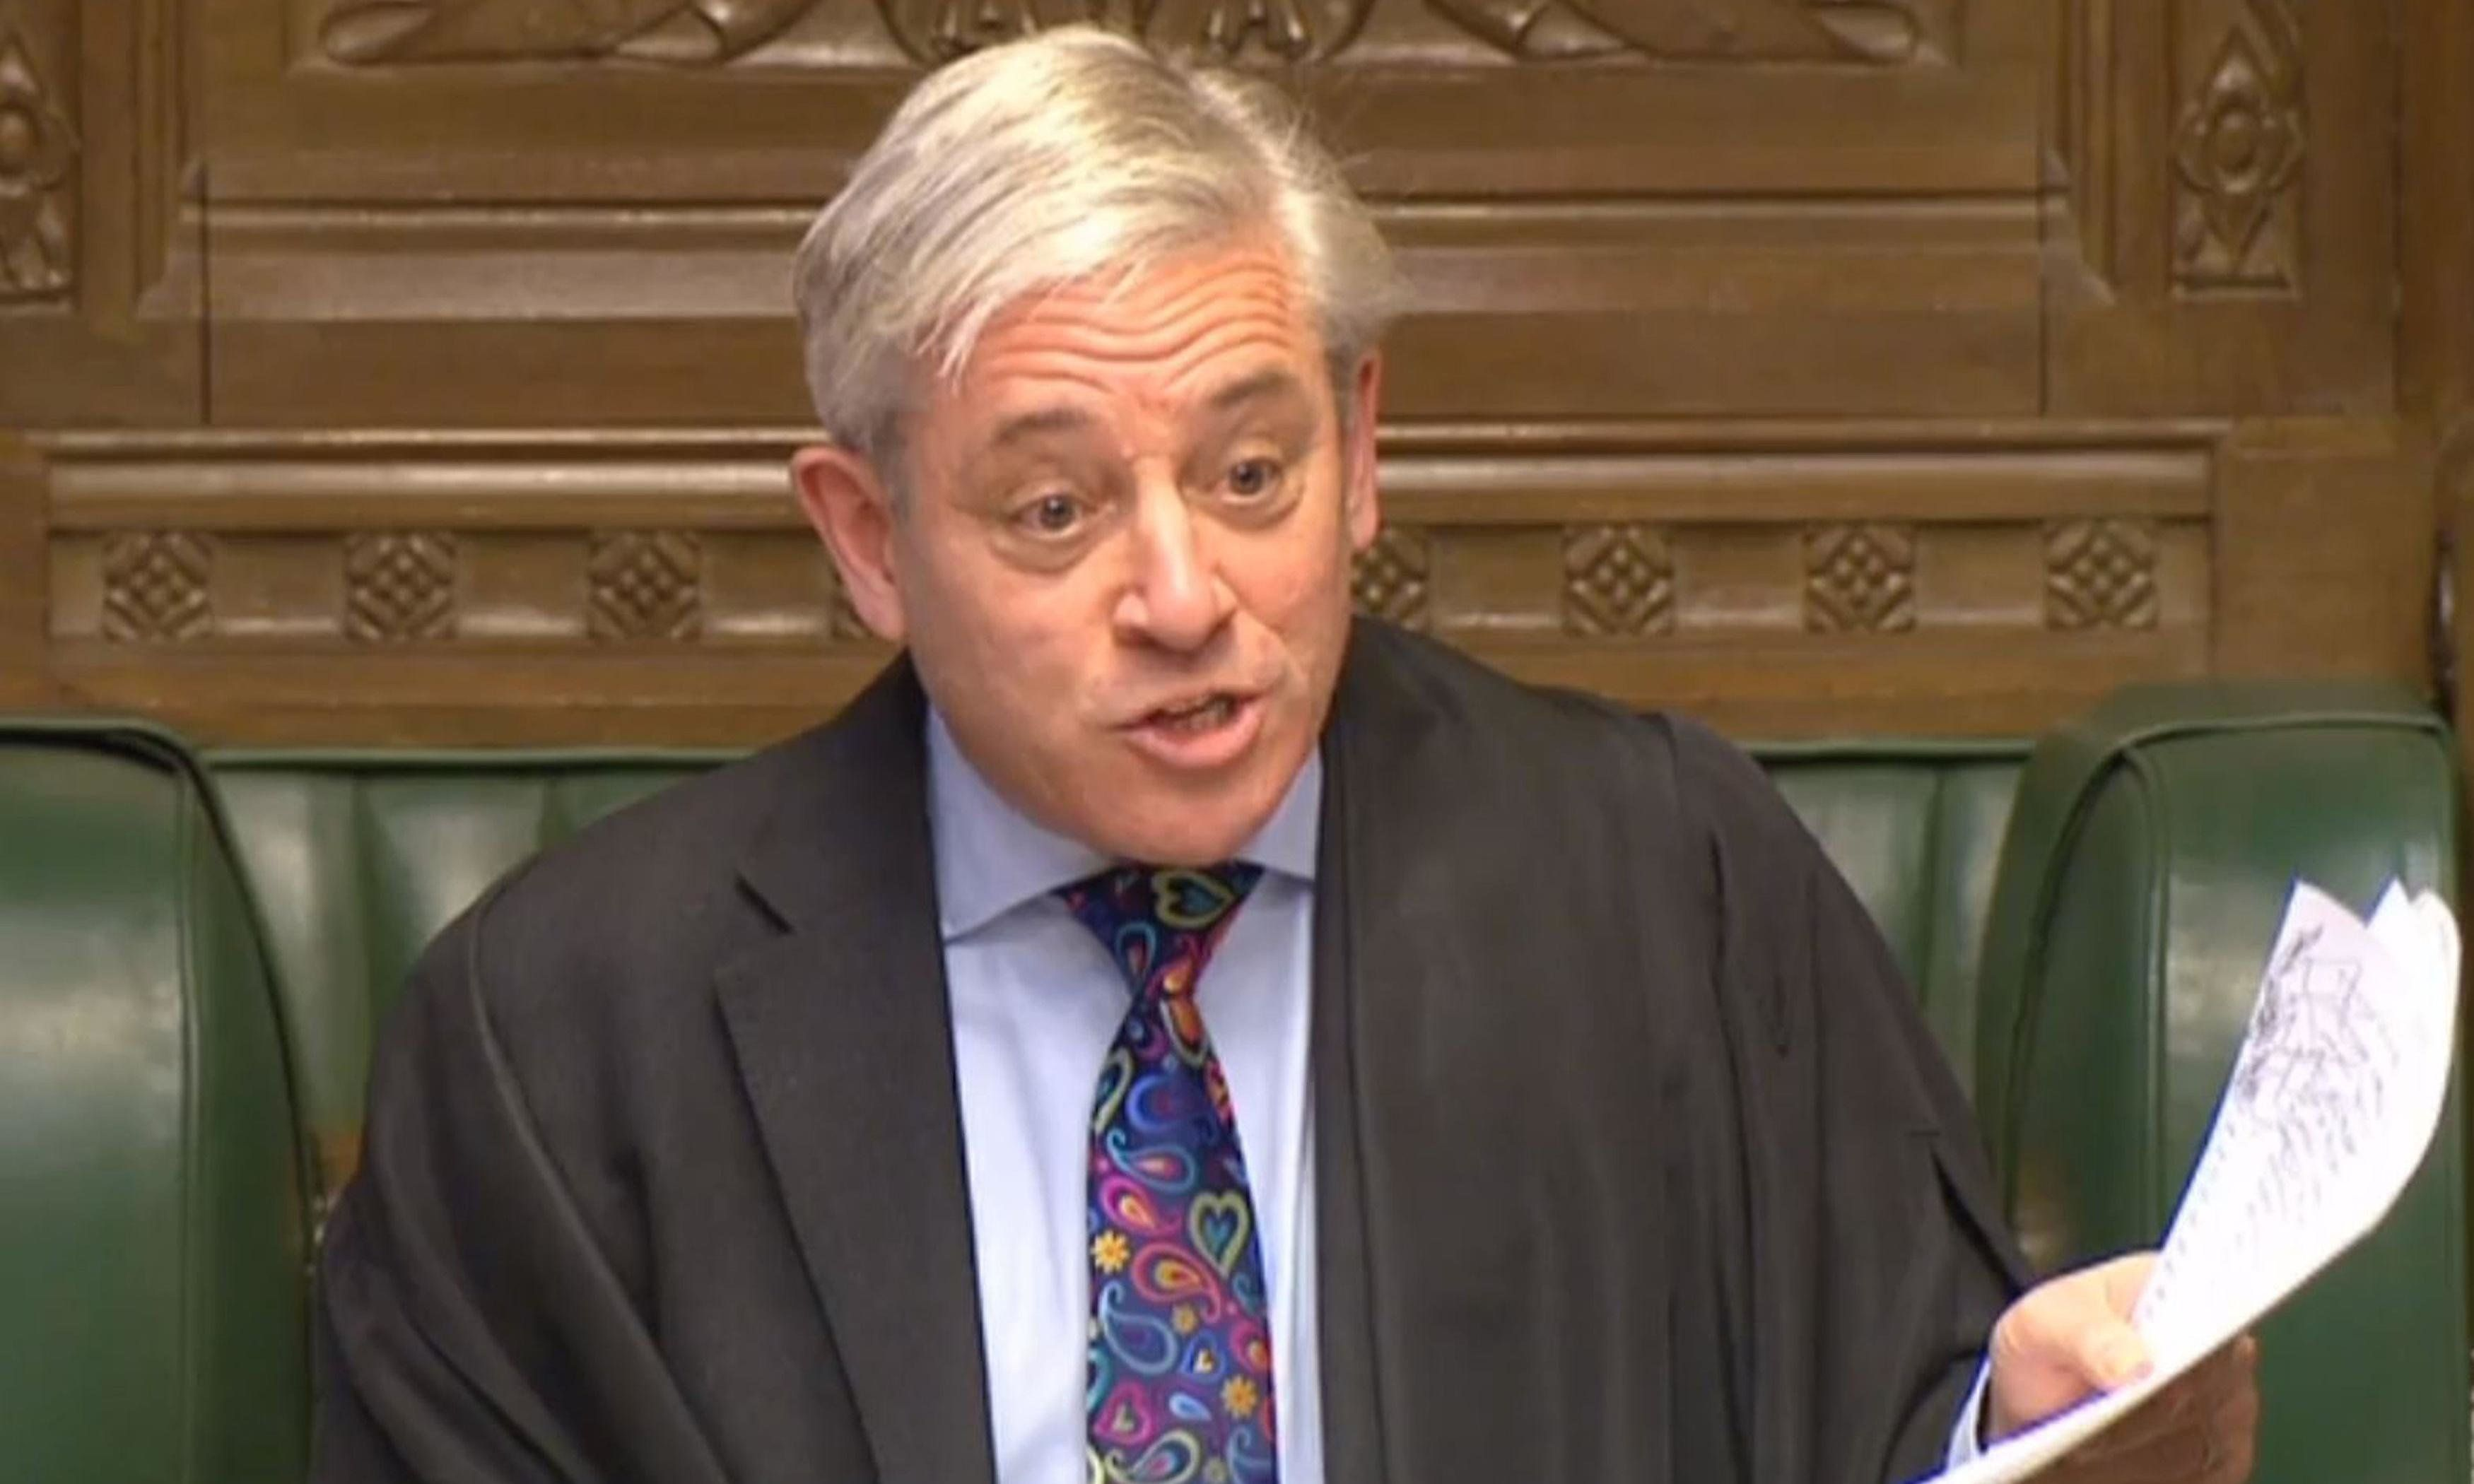 Speaker John Bercow wants independent body to examine Commons bullying claims